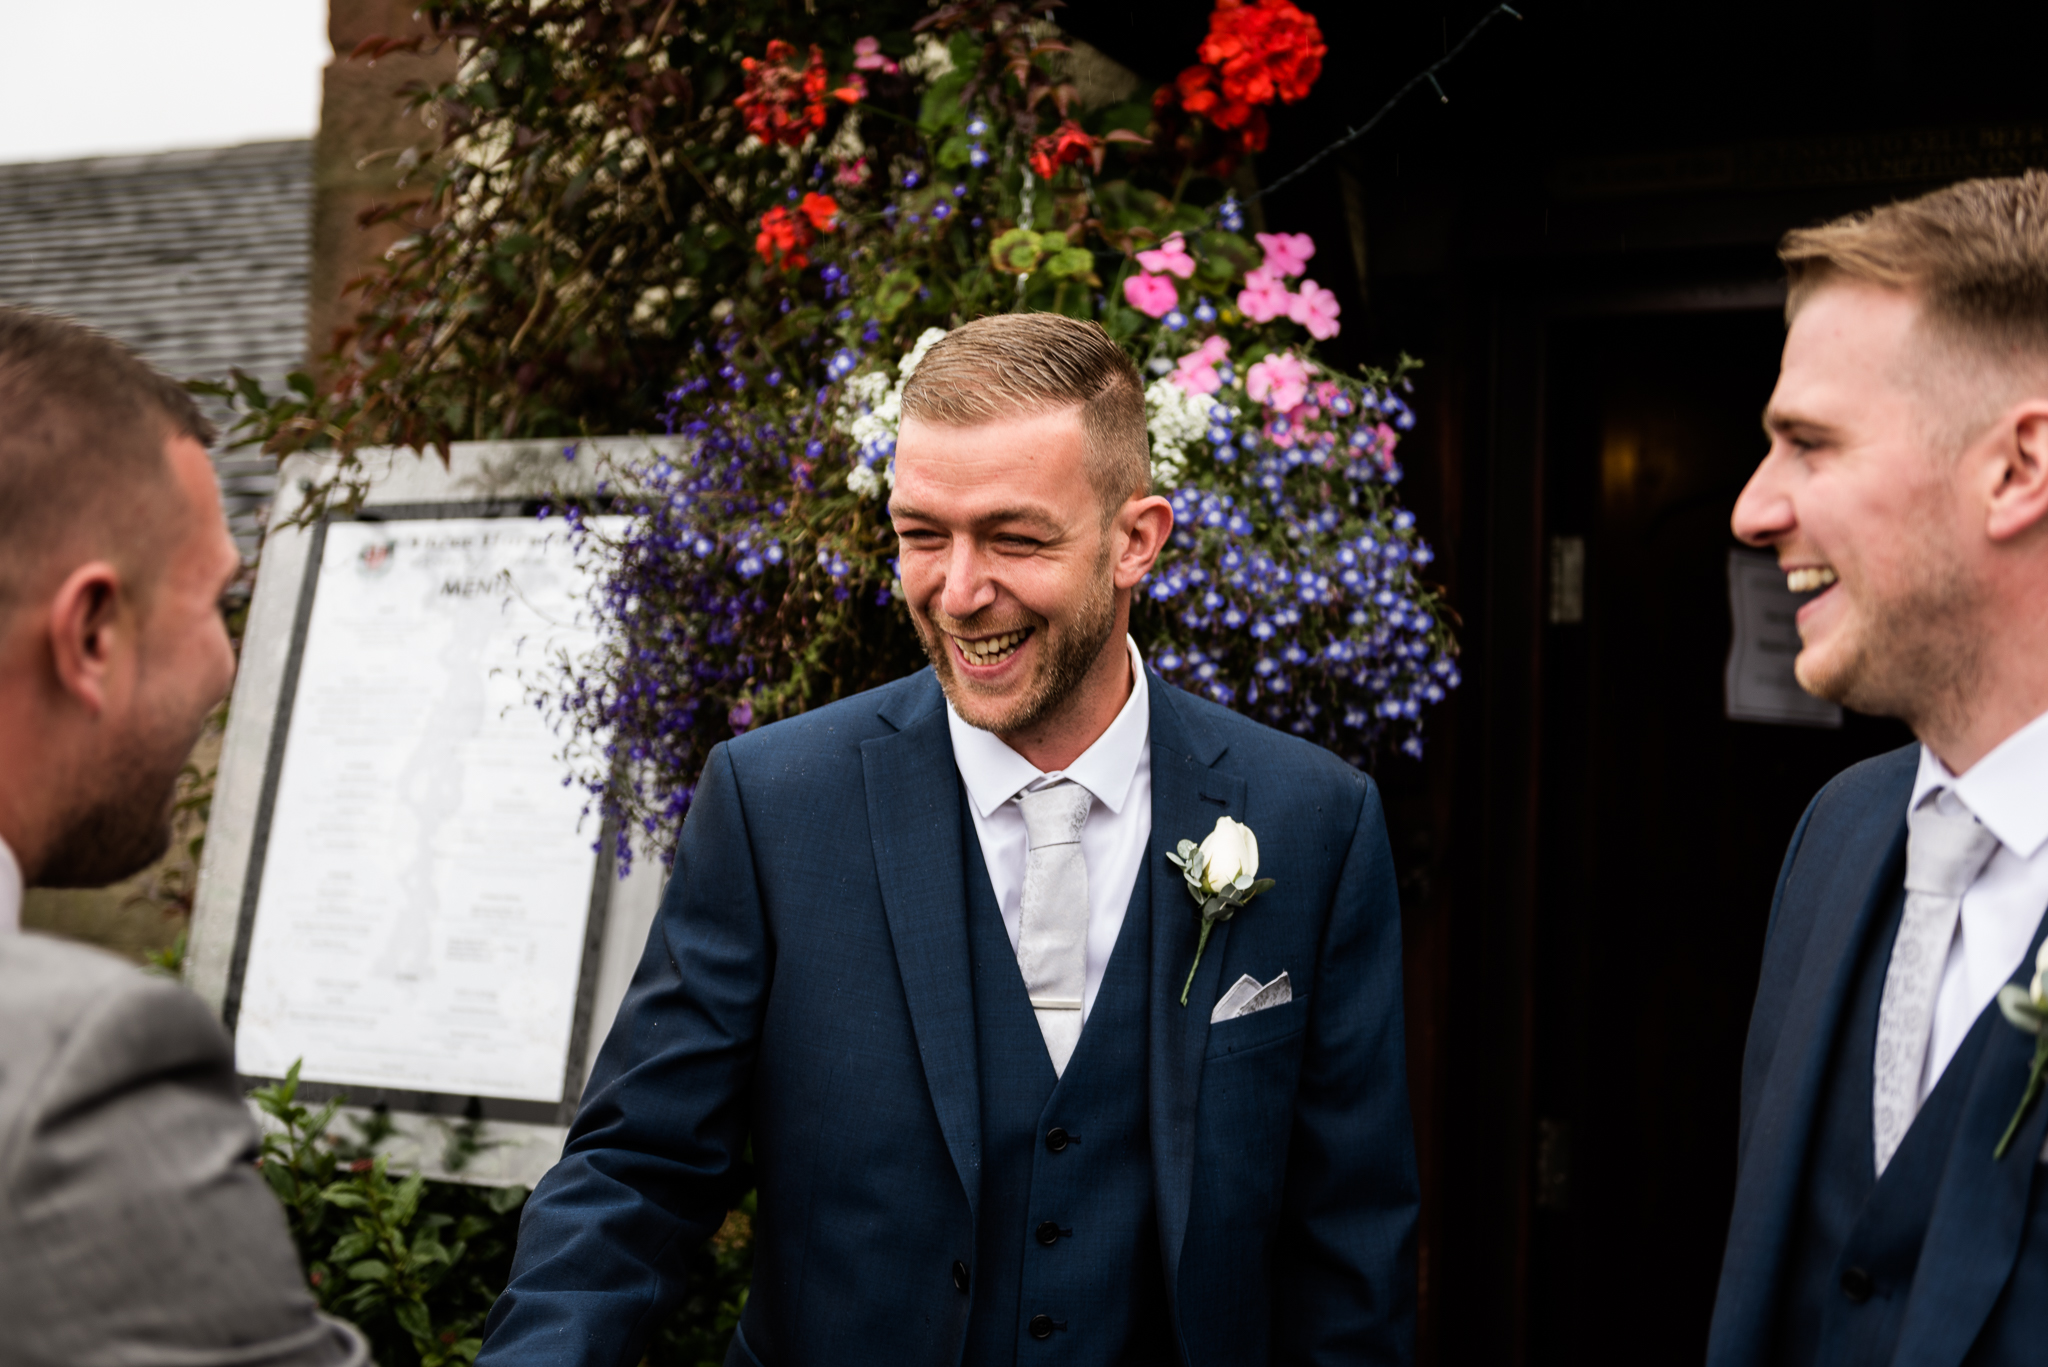 Staffordshire Moorlands Documentary Wedding Photography at The Three Horseshoes, Blackshaw Moor - Jenny Harper-11.jpg